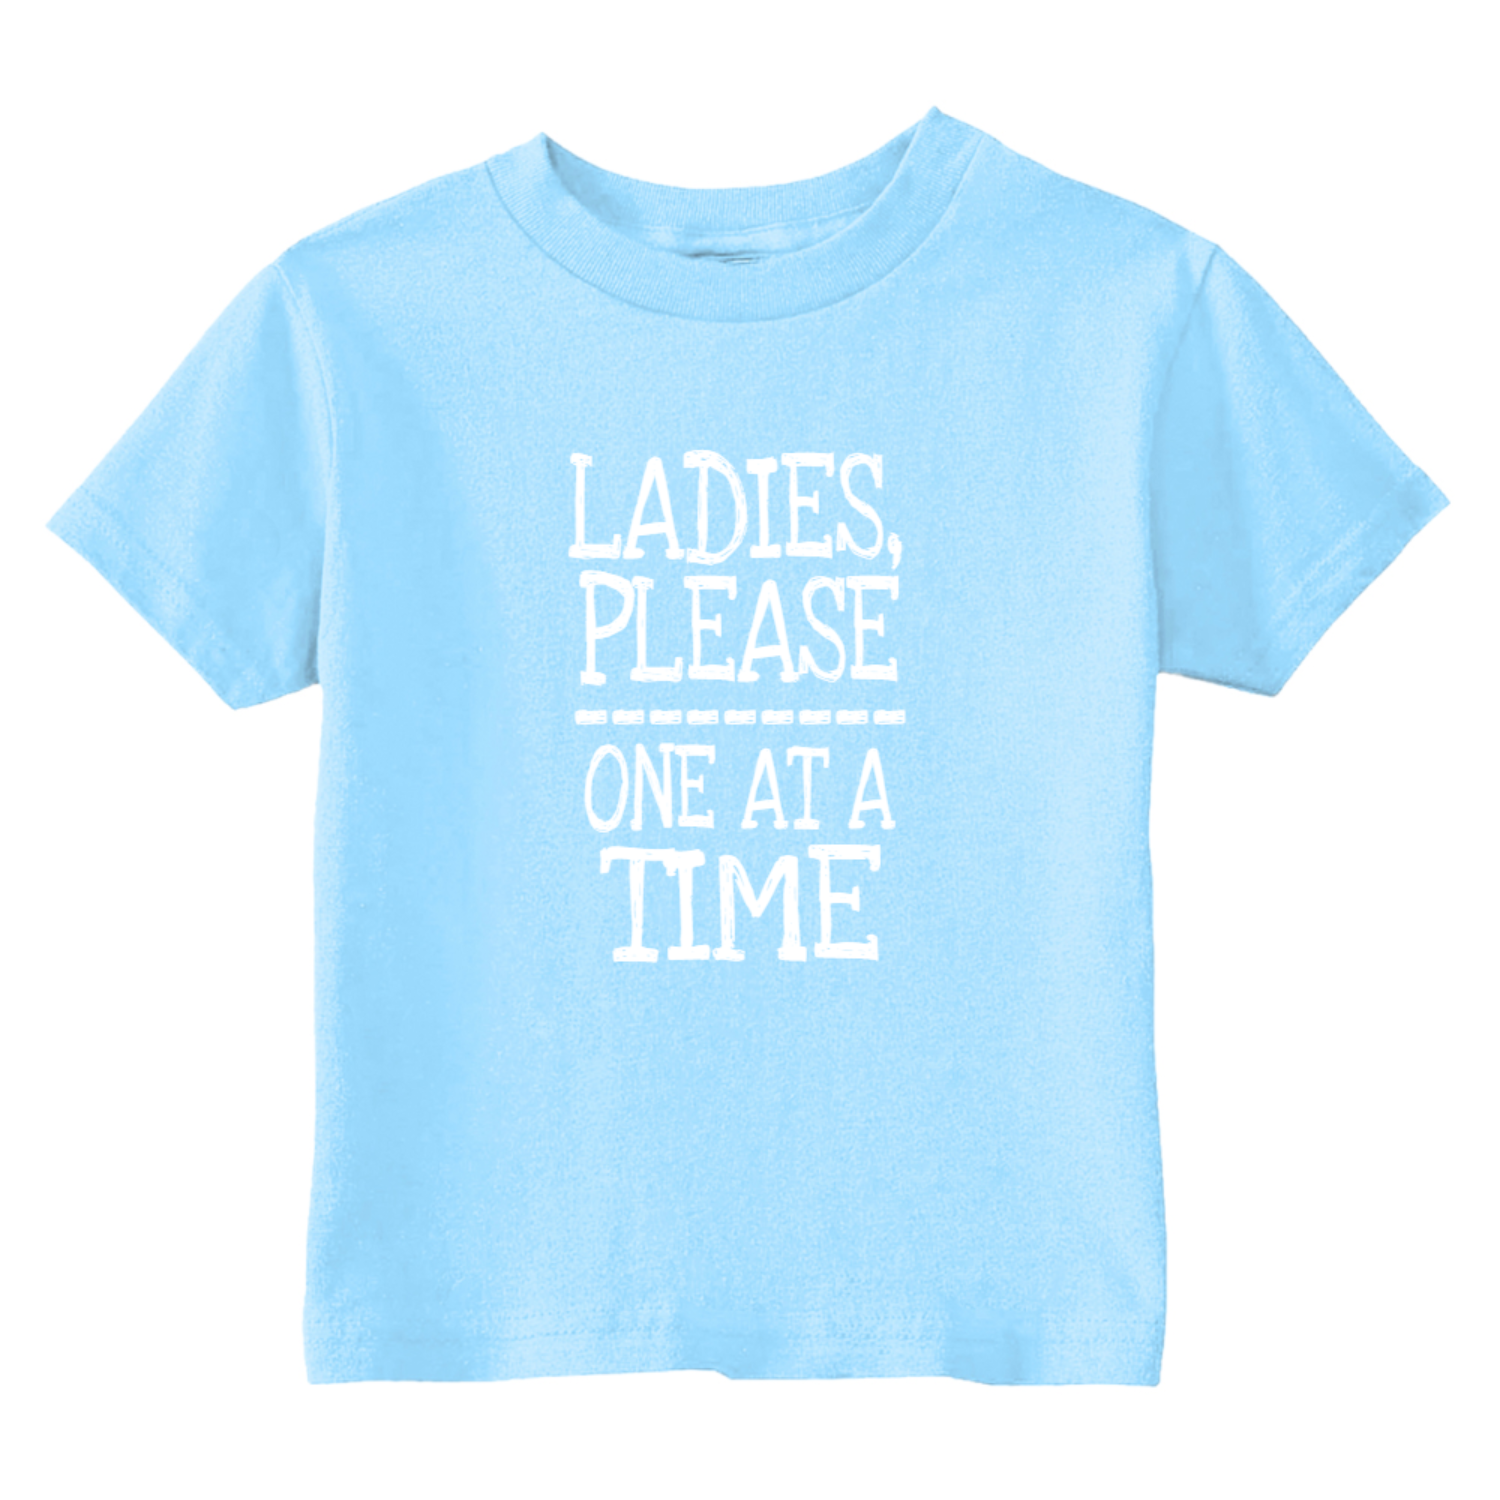 Ladies Please One At A Time Toddler T-Shirt | U.S. Custom Kids